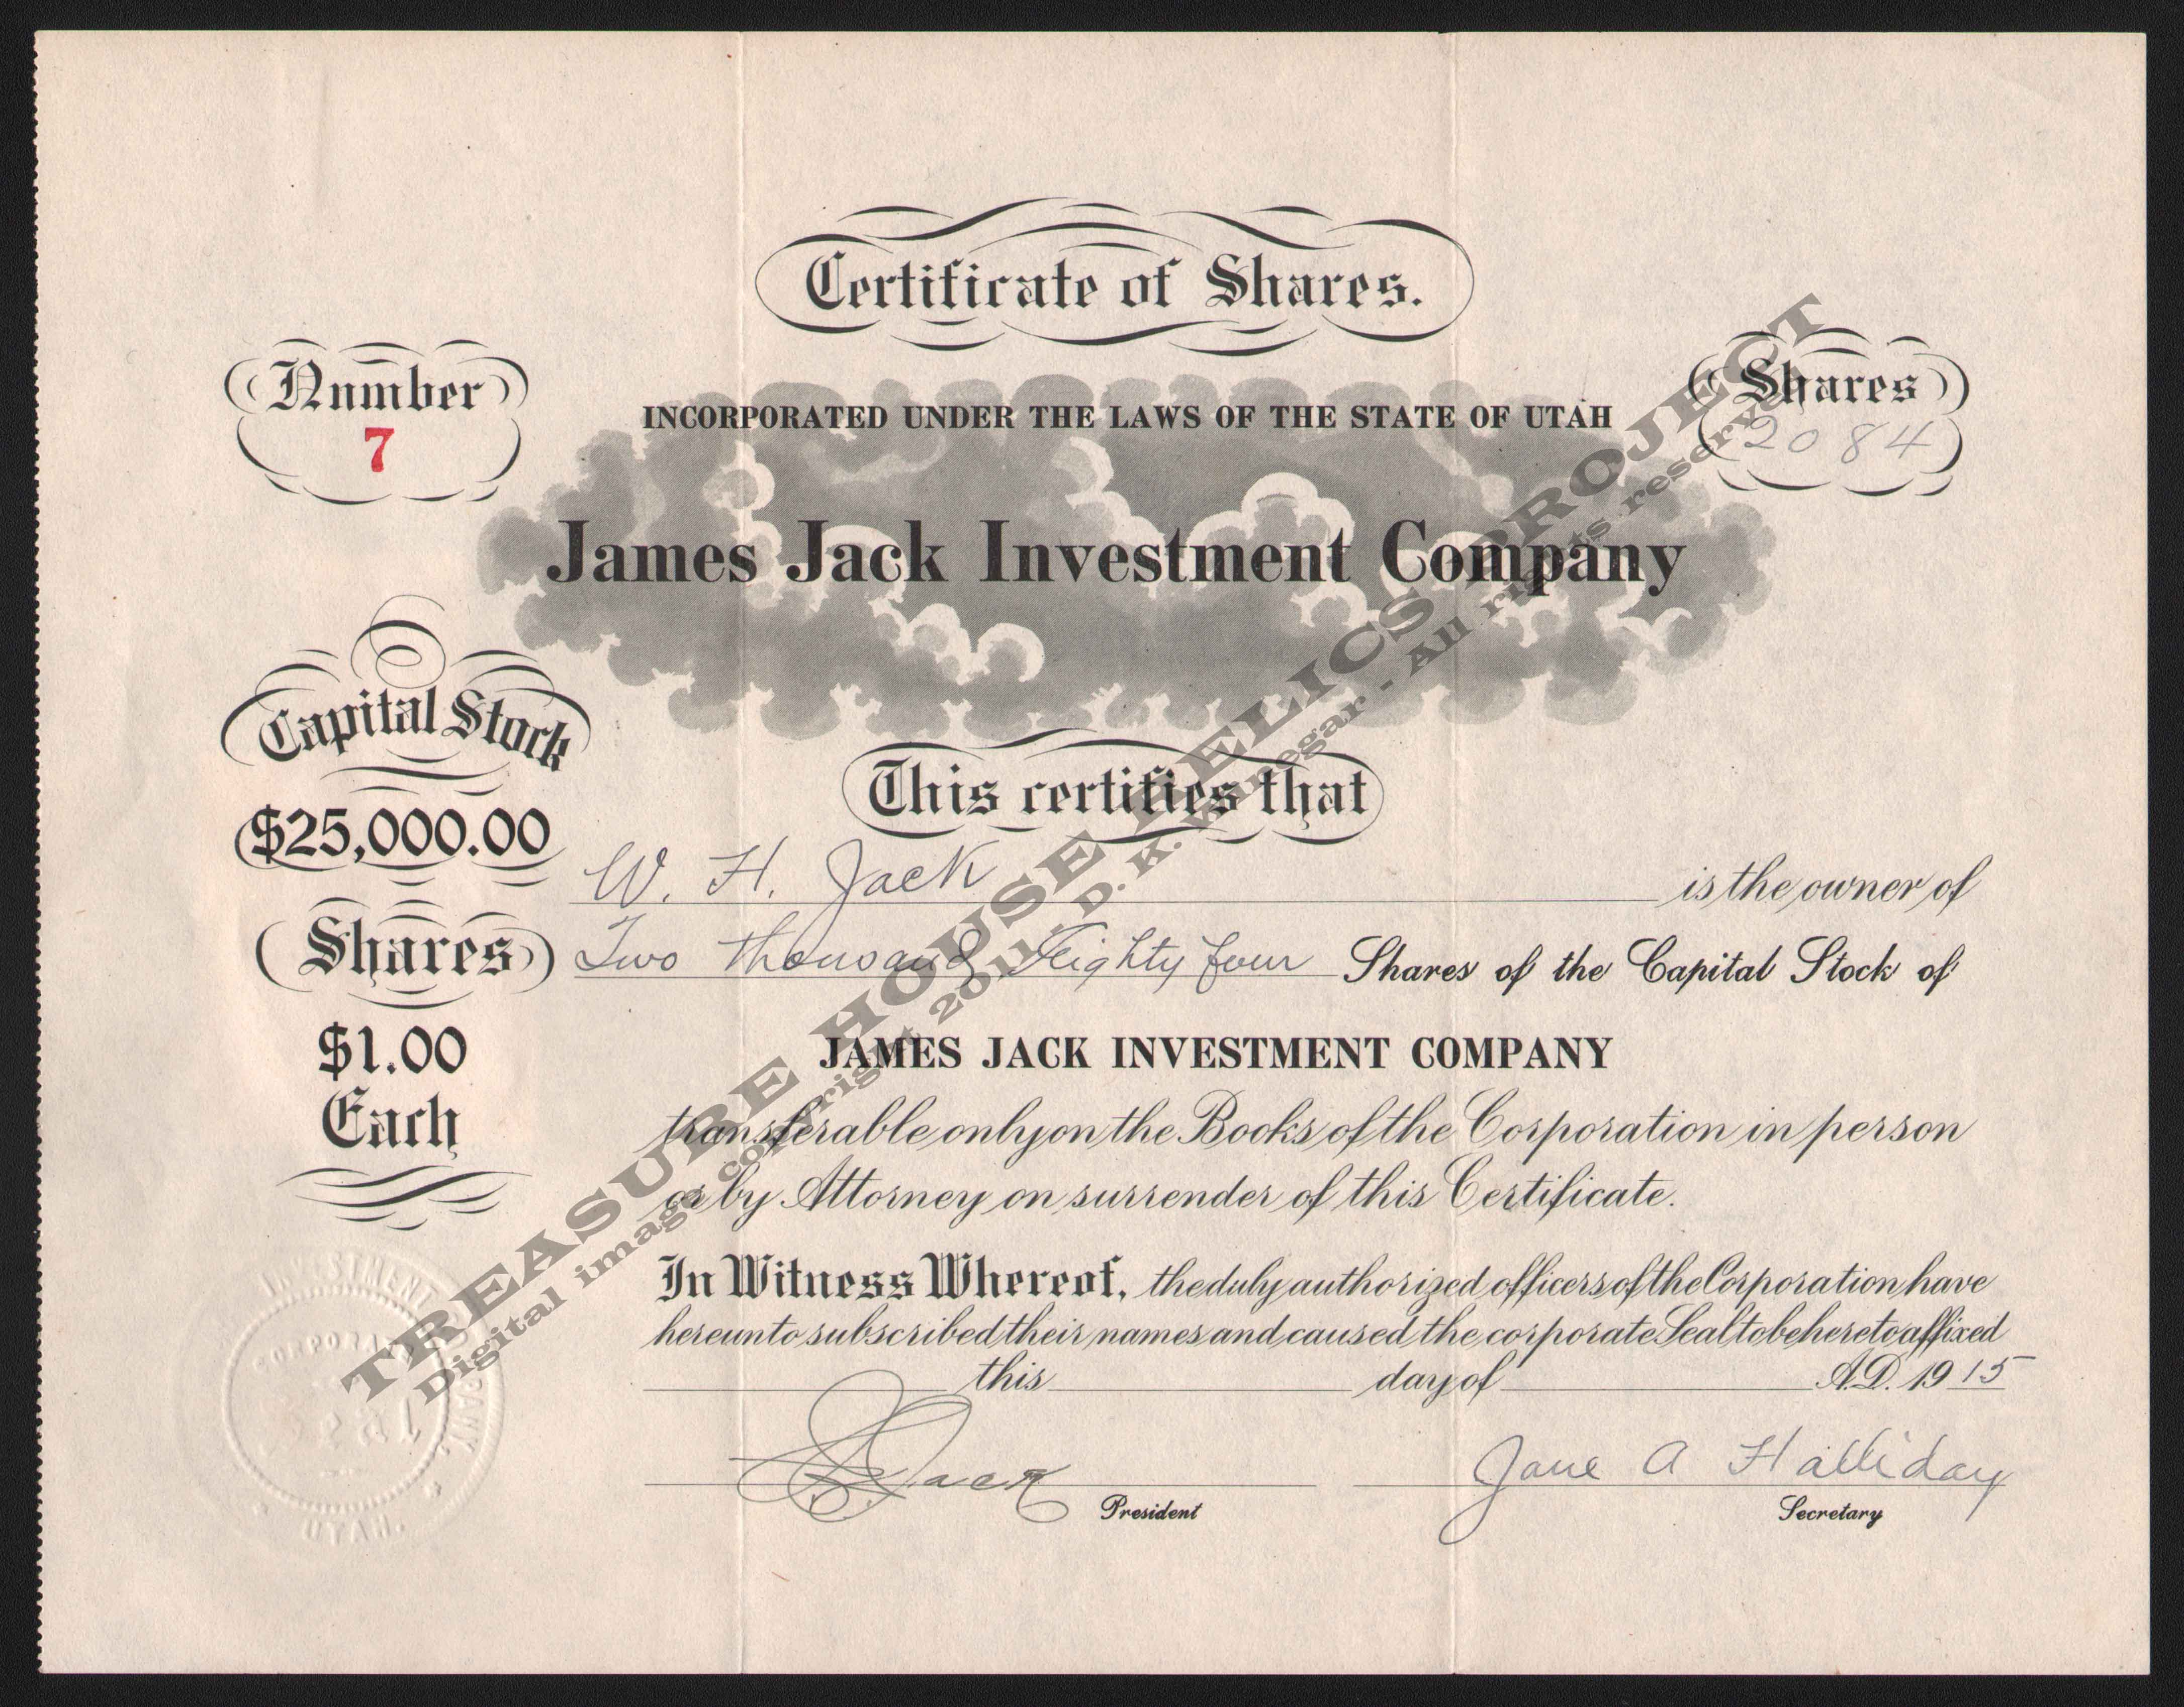 JAMES_JACK_INVESTMENT_COMPANY_7_1915_400_emboss.jpg